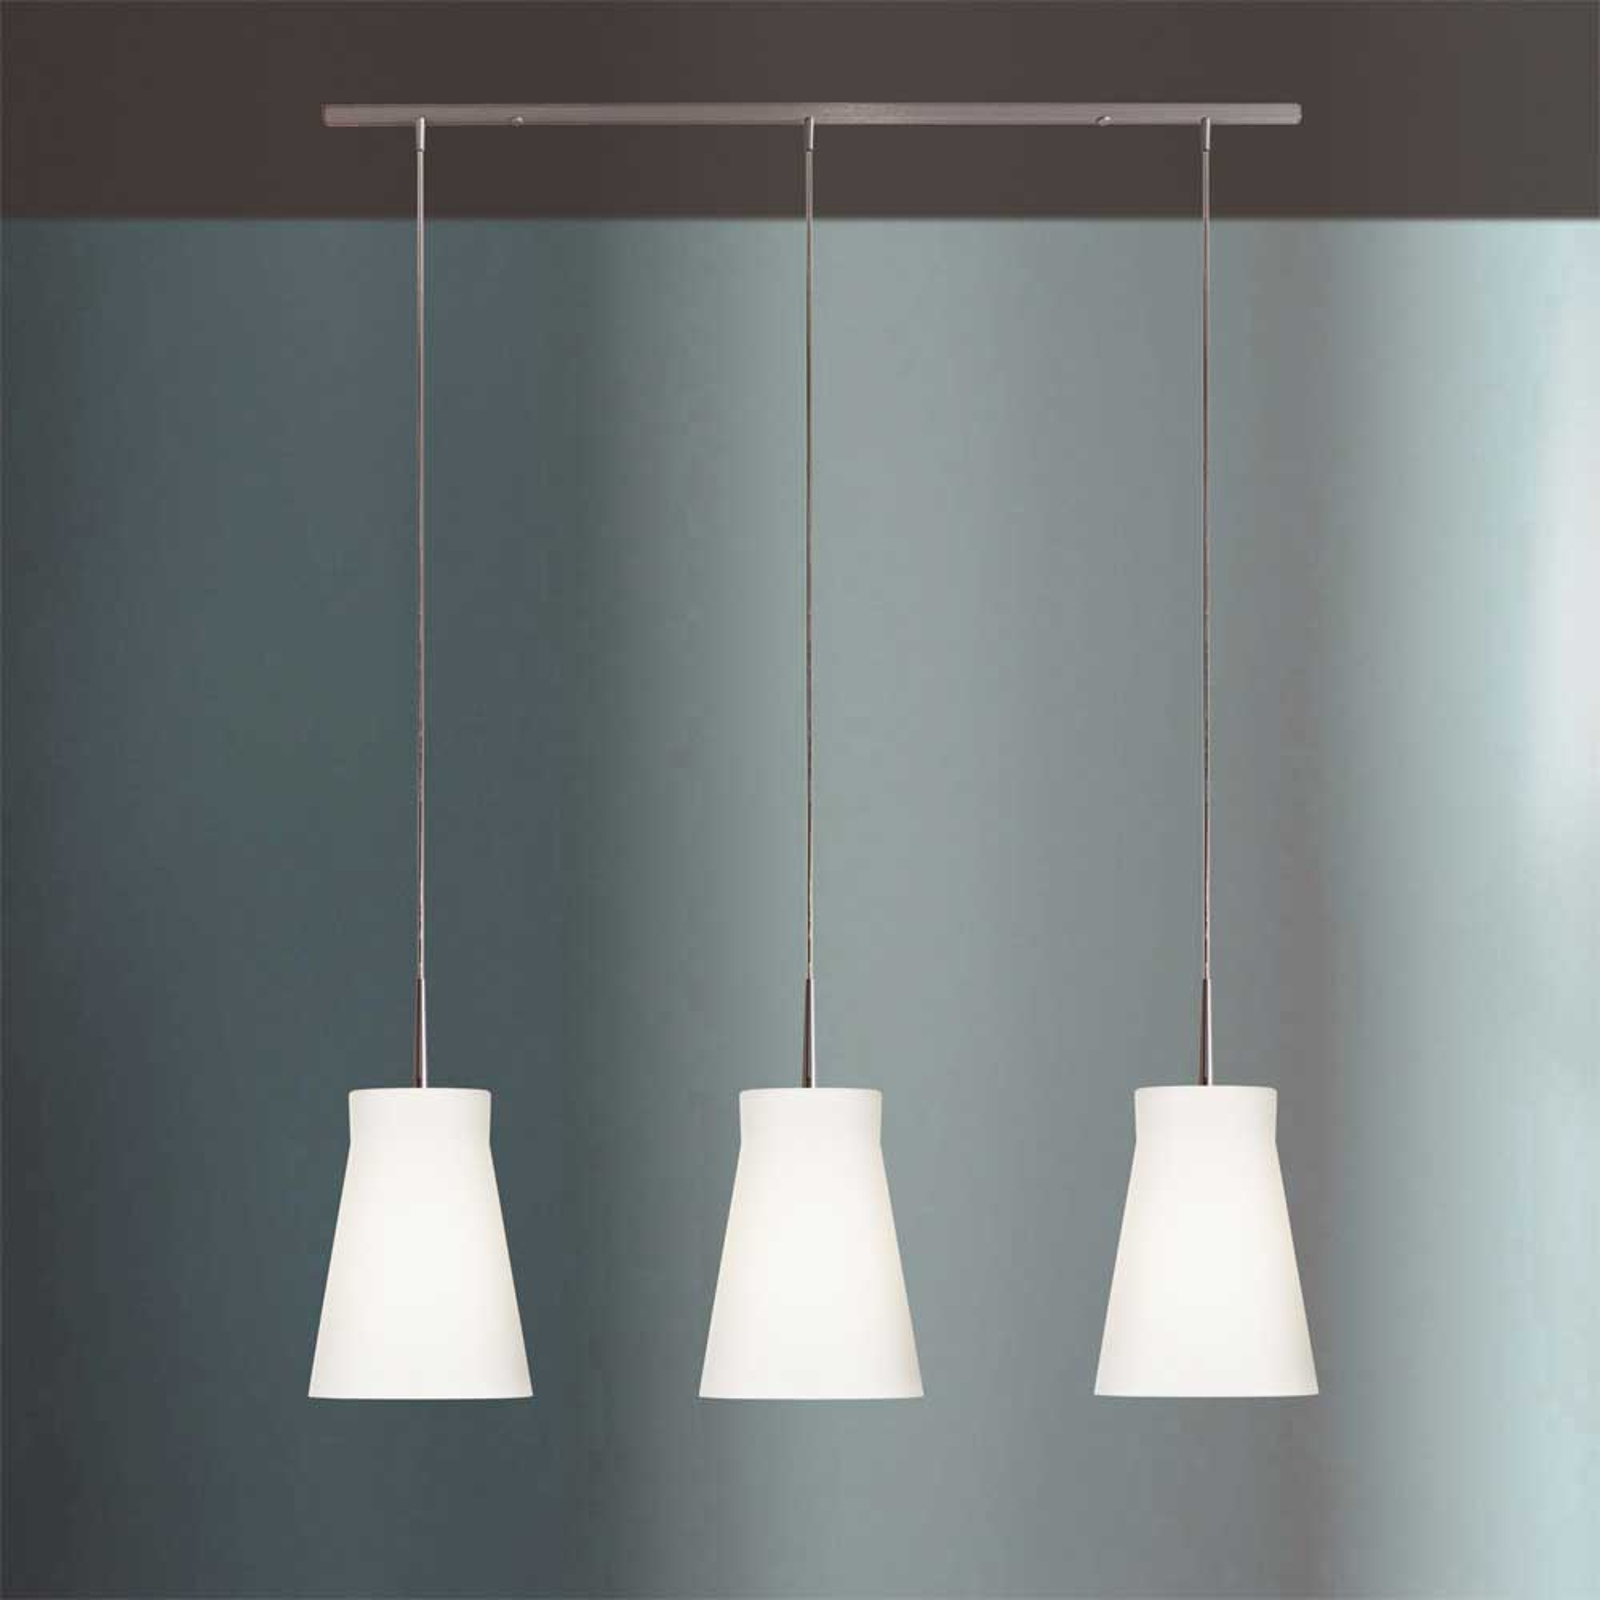 MOMO - multi-bulb pendant light_2000315_1